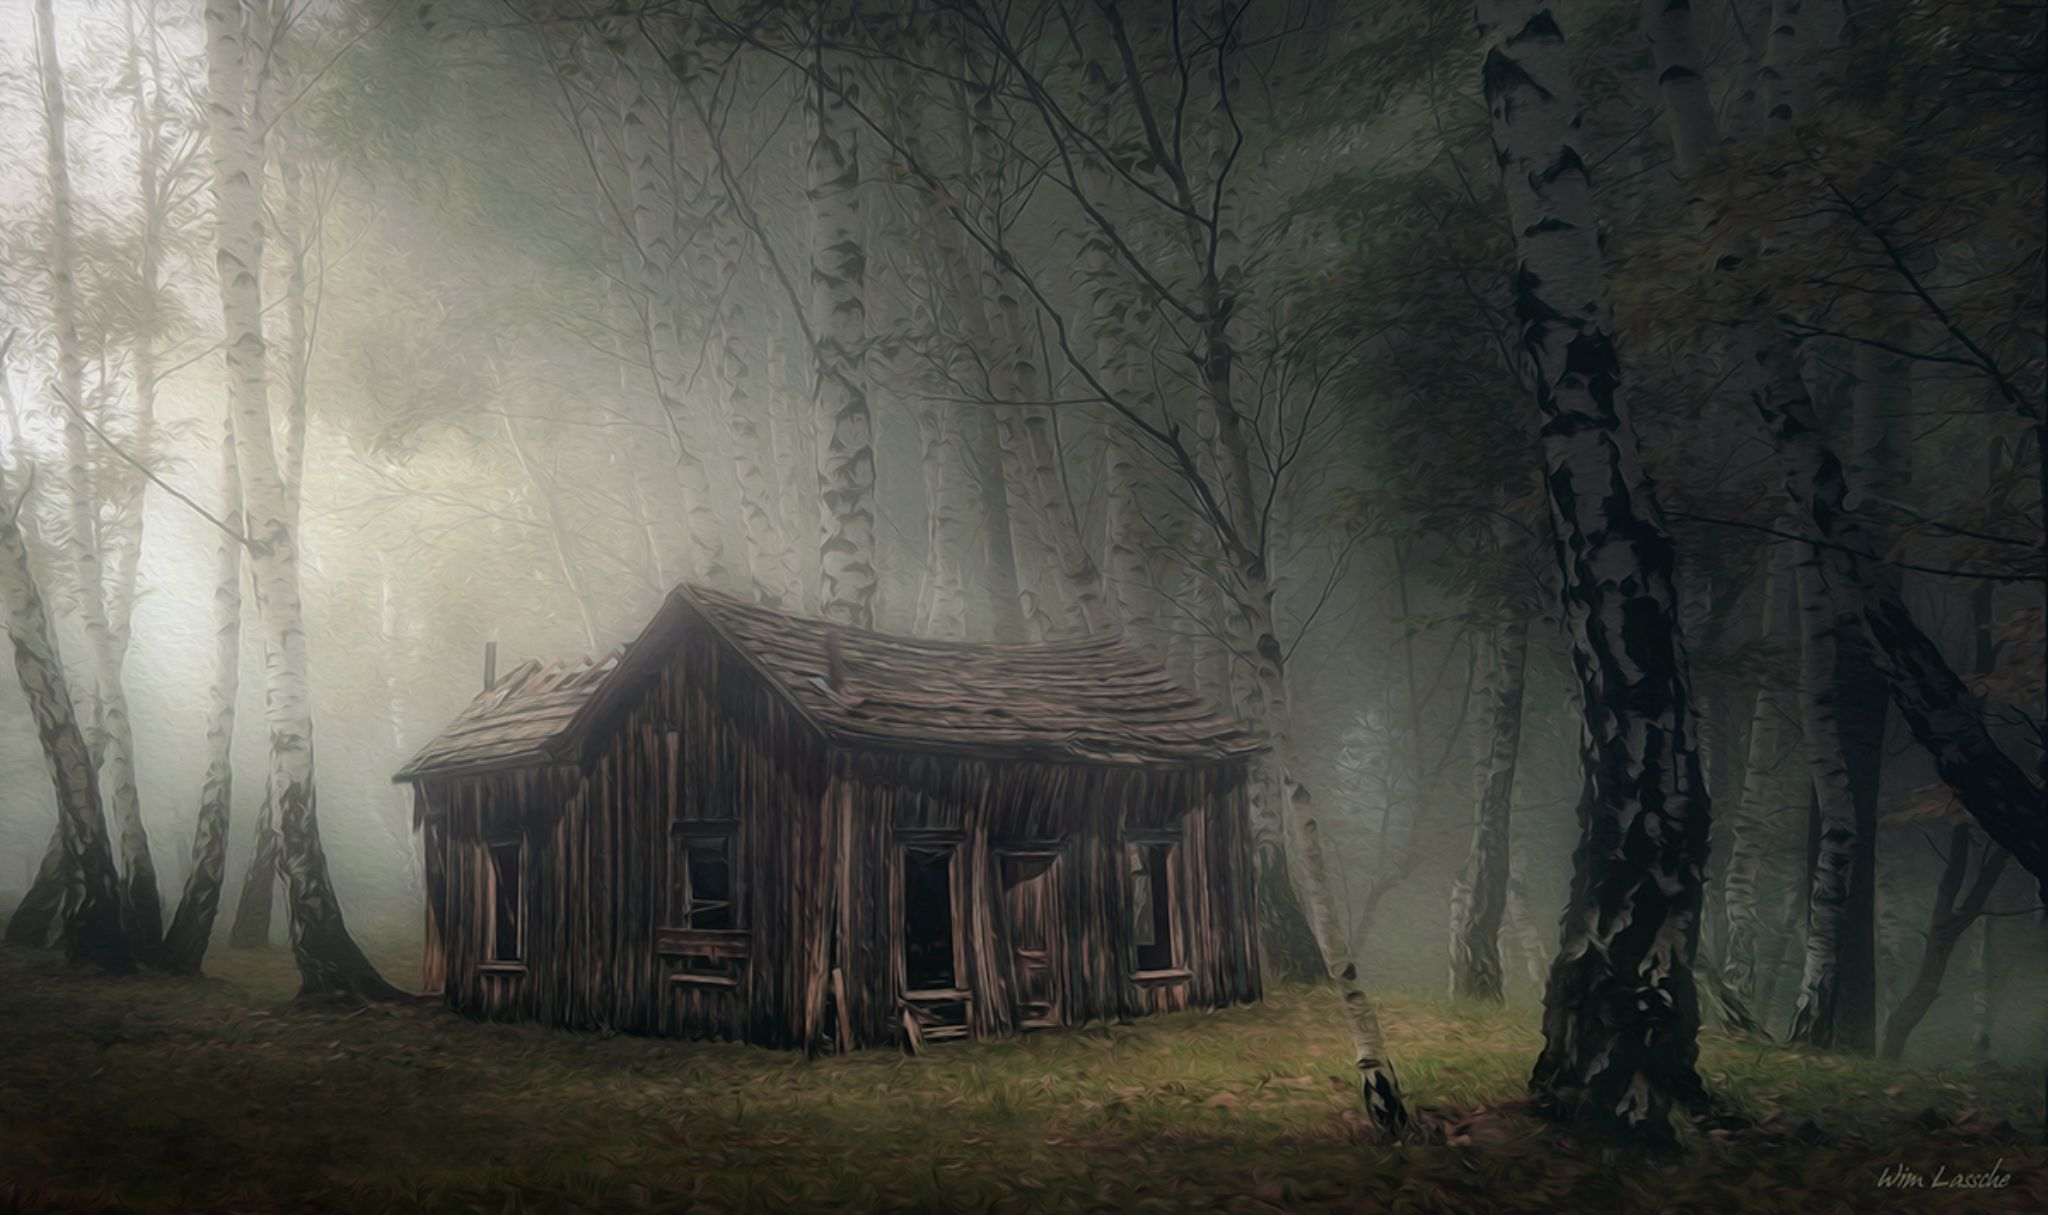 Abandoned hut in the Woods by Wim Lassche